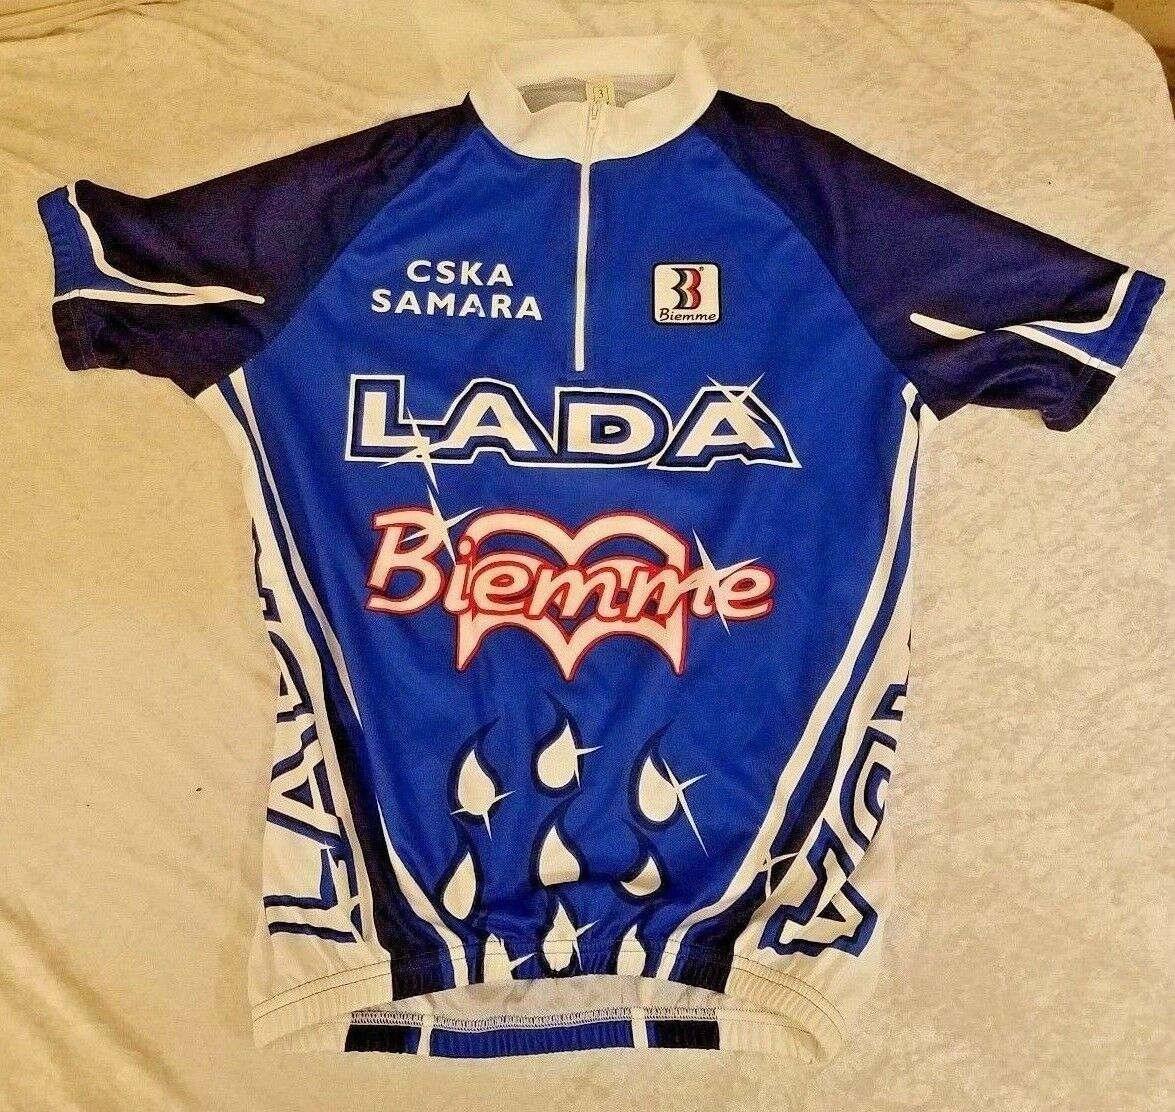 Cycling Bicycling Jersey Biemme Cska Samara LADA M-3-48